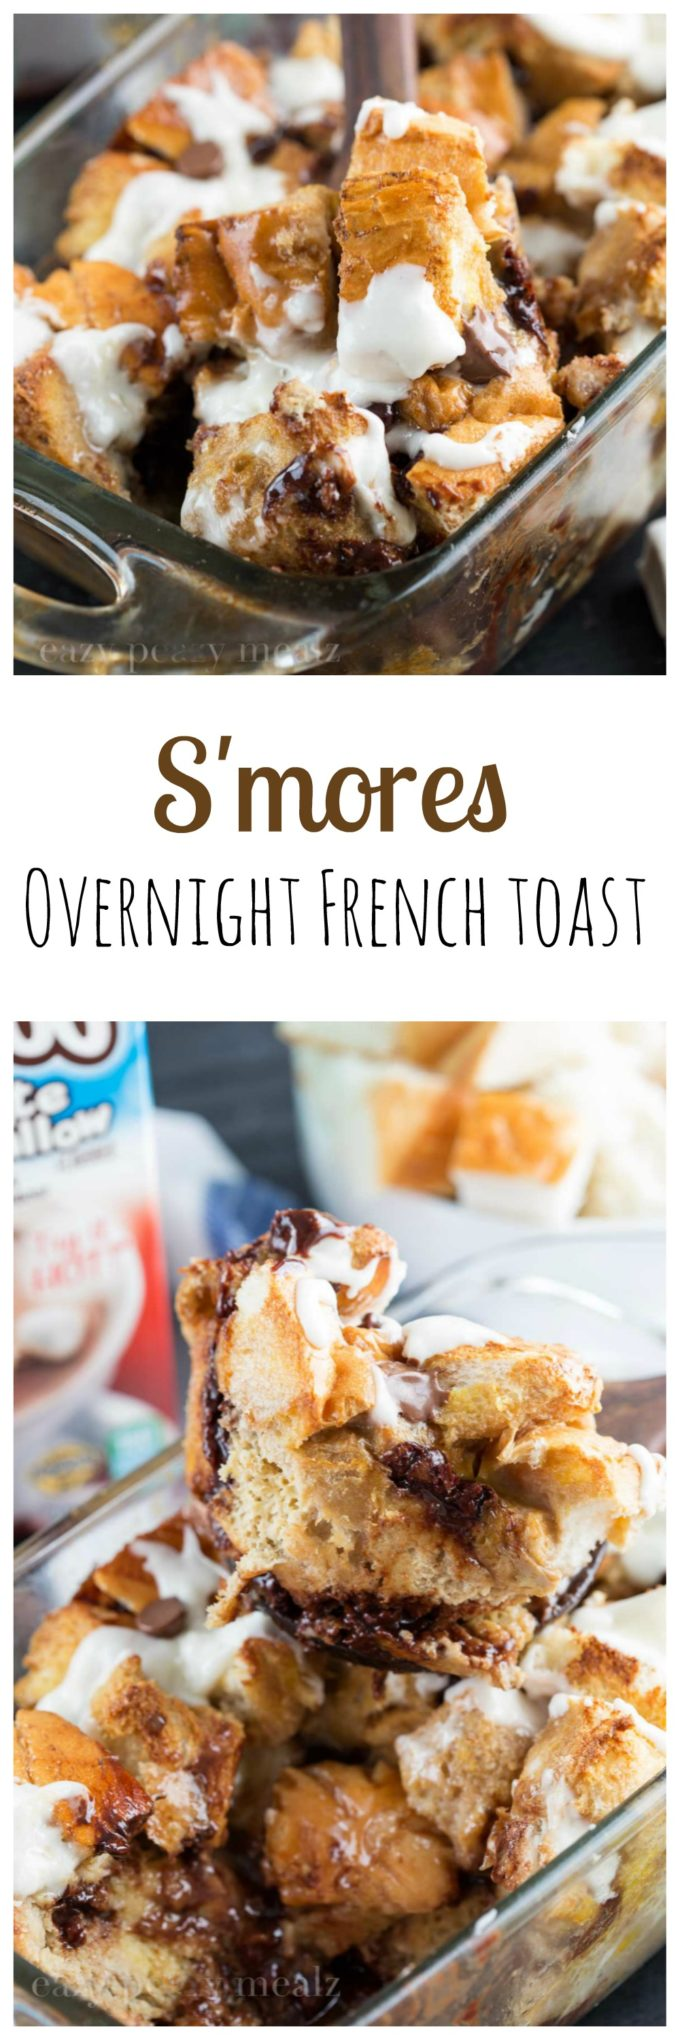 PIn Smores overnight french toast